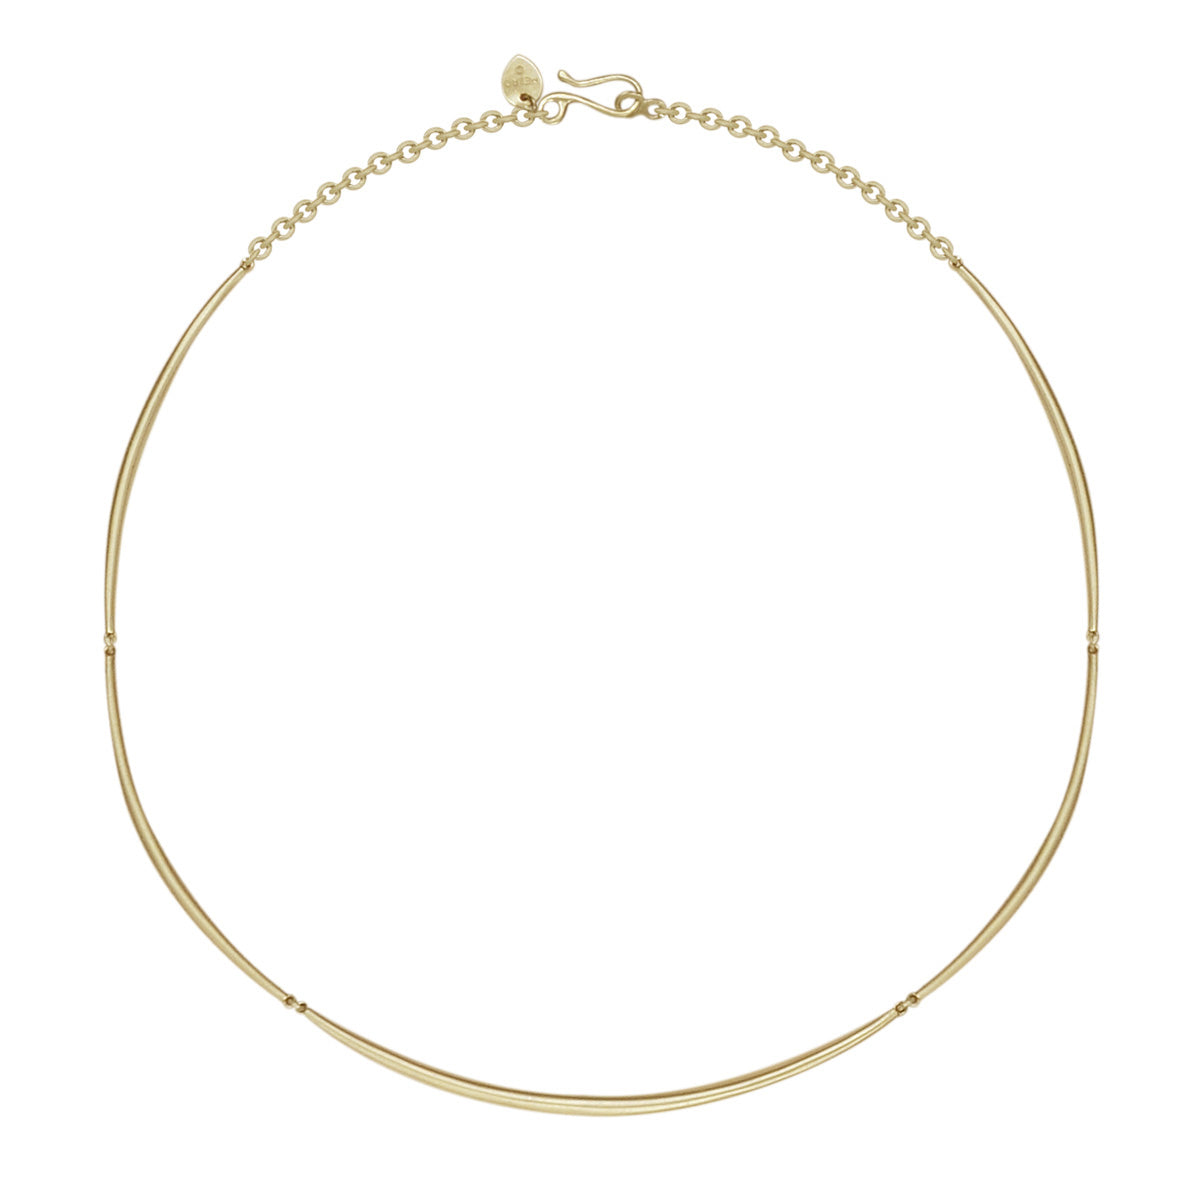 18K Gold Full Tibetan Bar Necklace